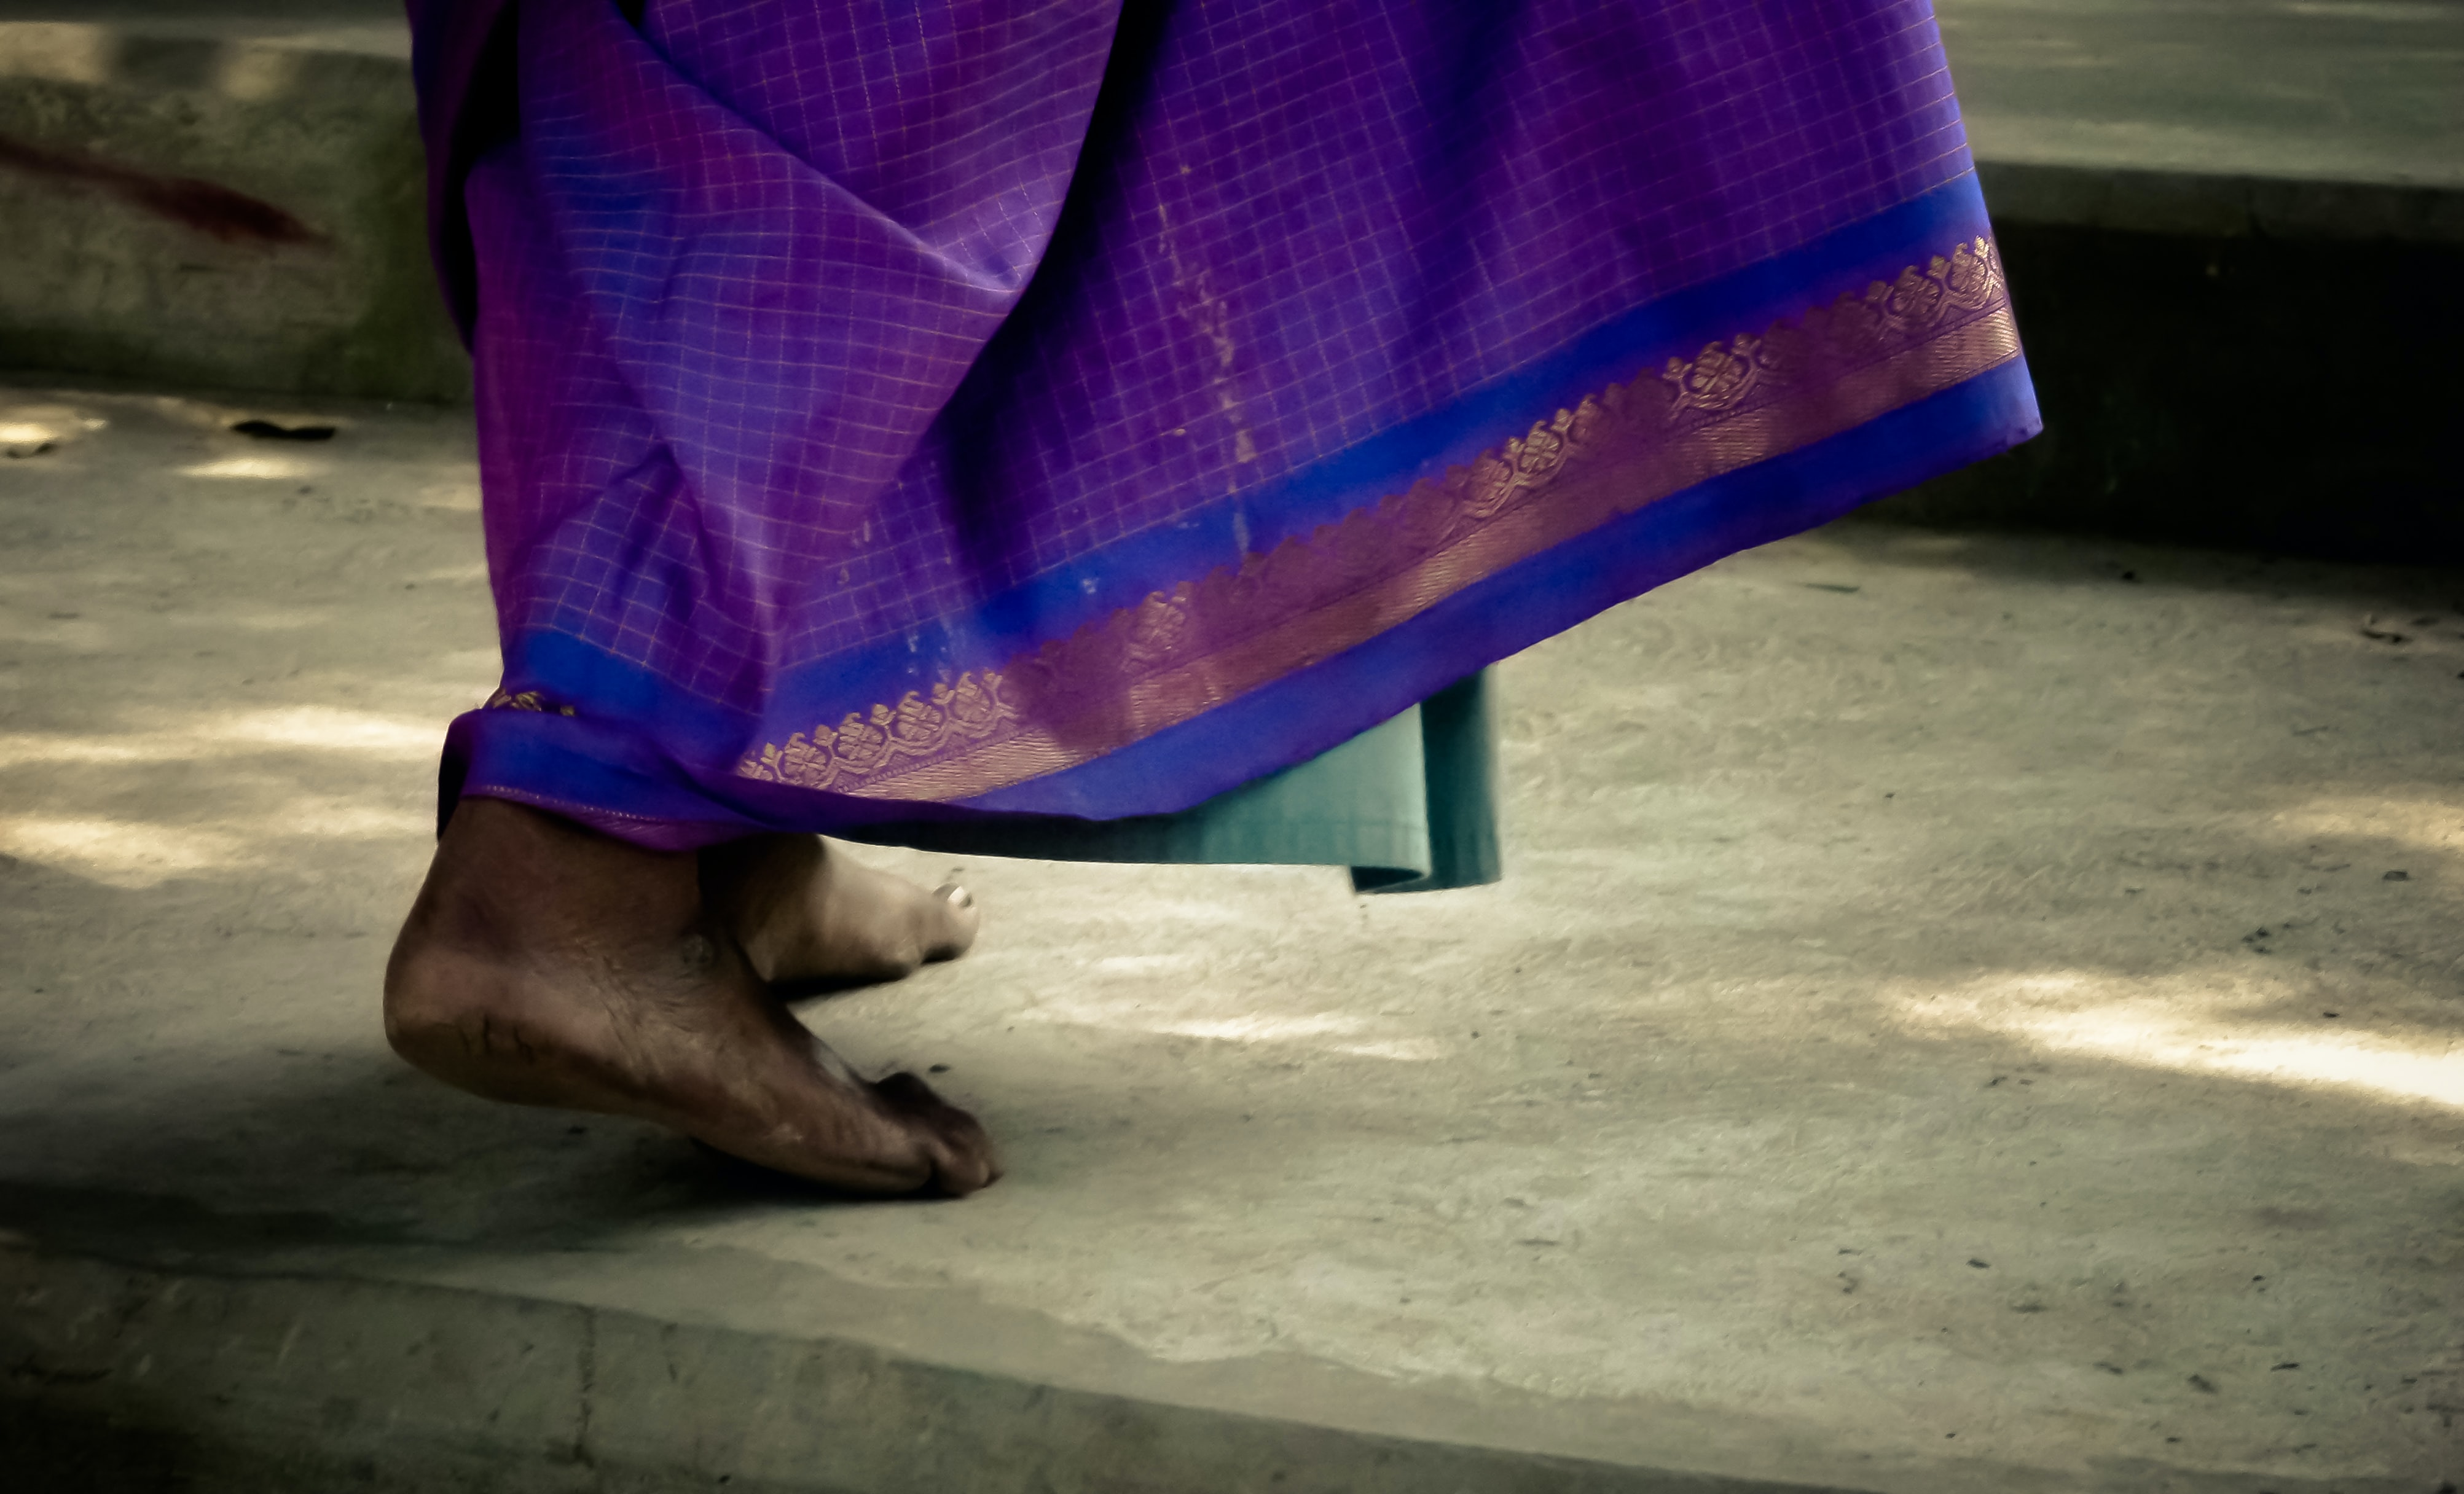 Woman's bare feet walk on the pavement as a saree brushes her ankles